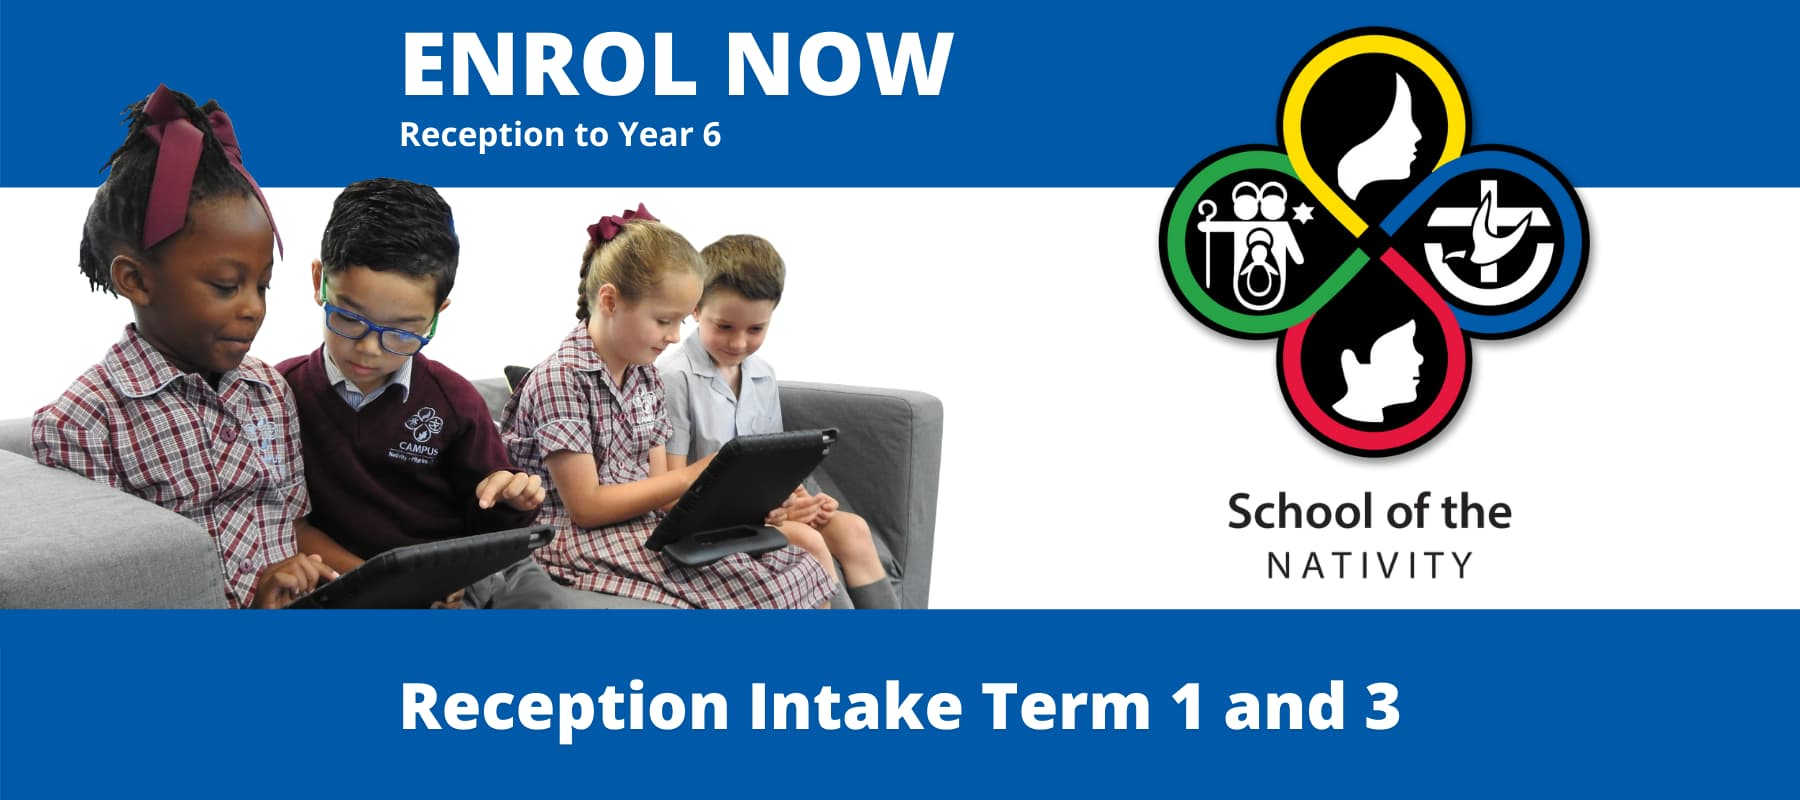 Reception intake Term 1 and 3